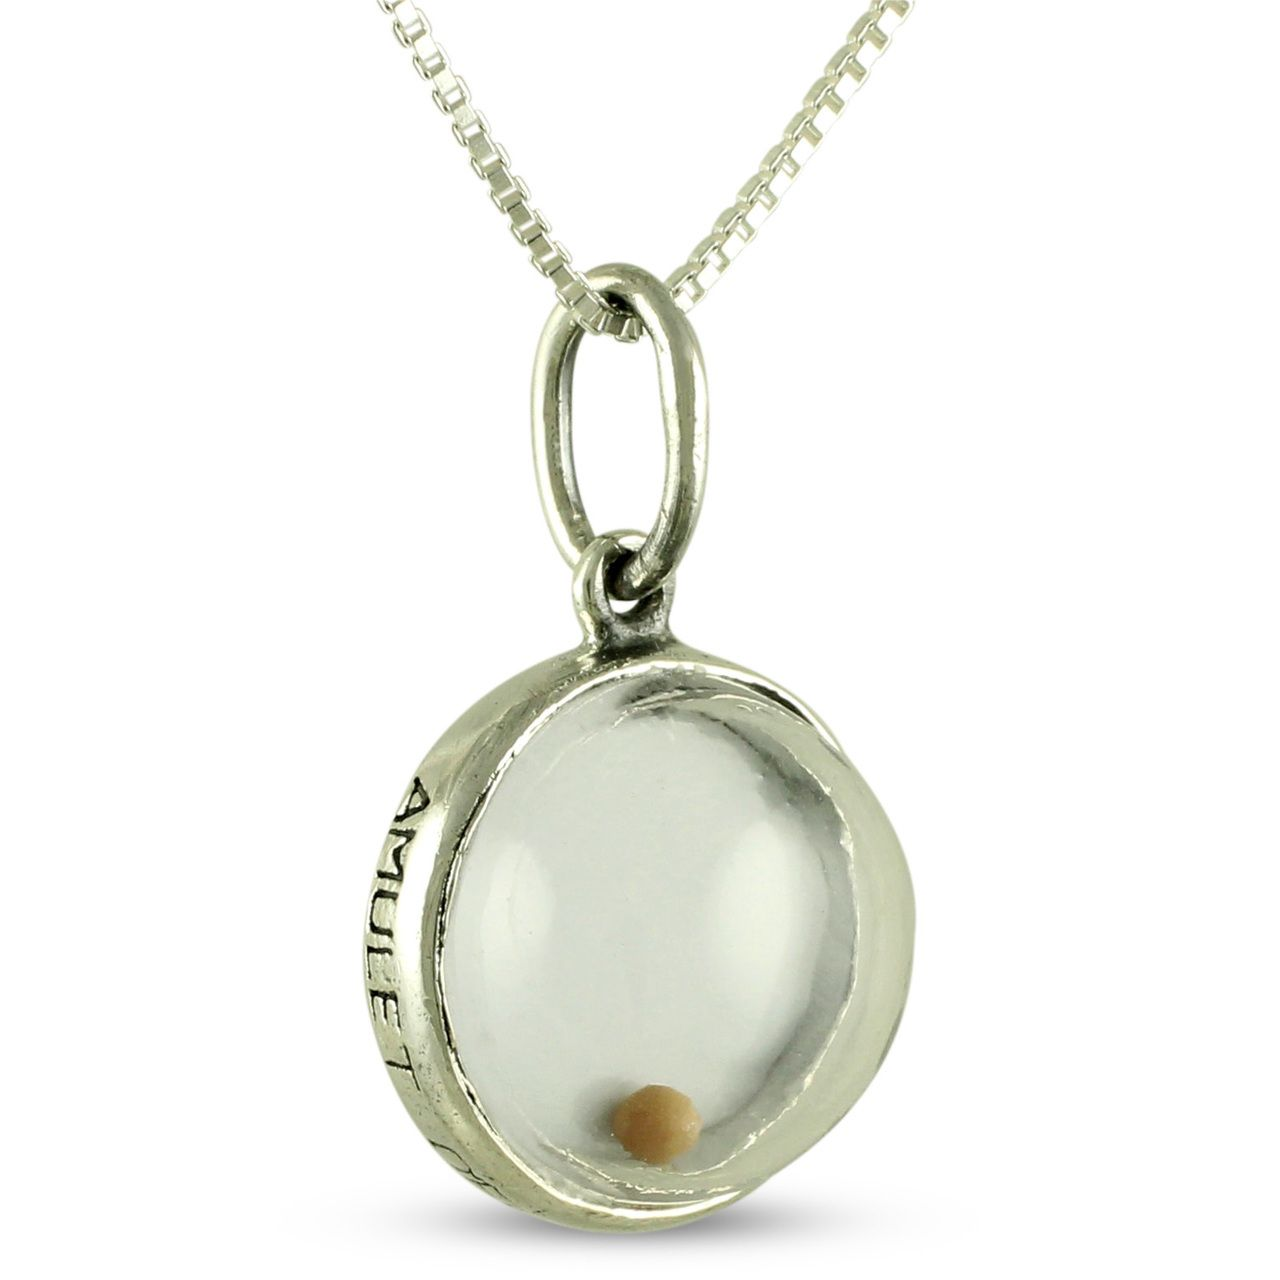 This is an image of the front of the mustard seed pendant dangling this is an image of the front of the mustard seed pendant dangling from the sterling silver box chain aloadofball Choice Image